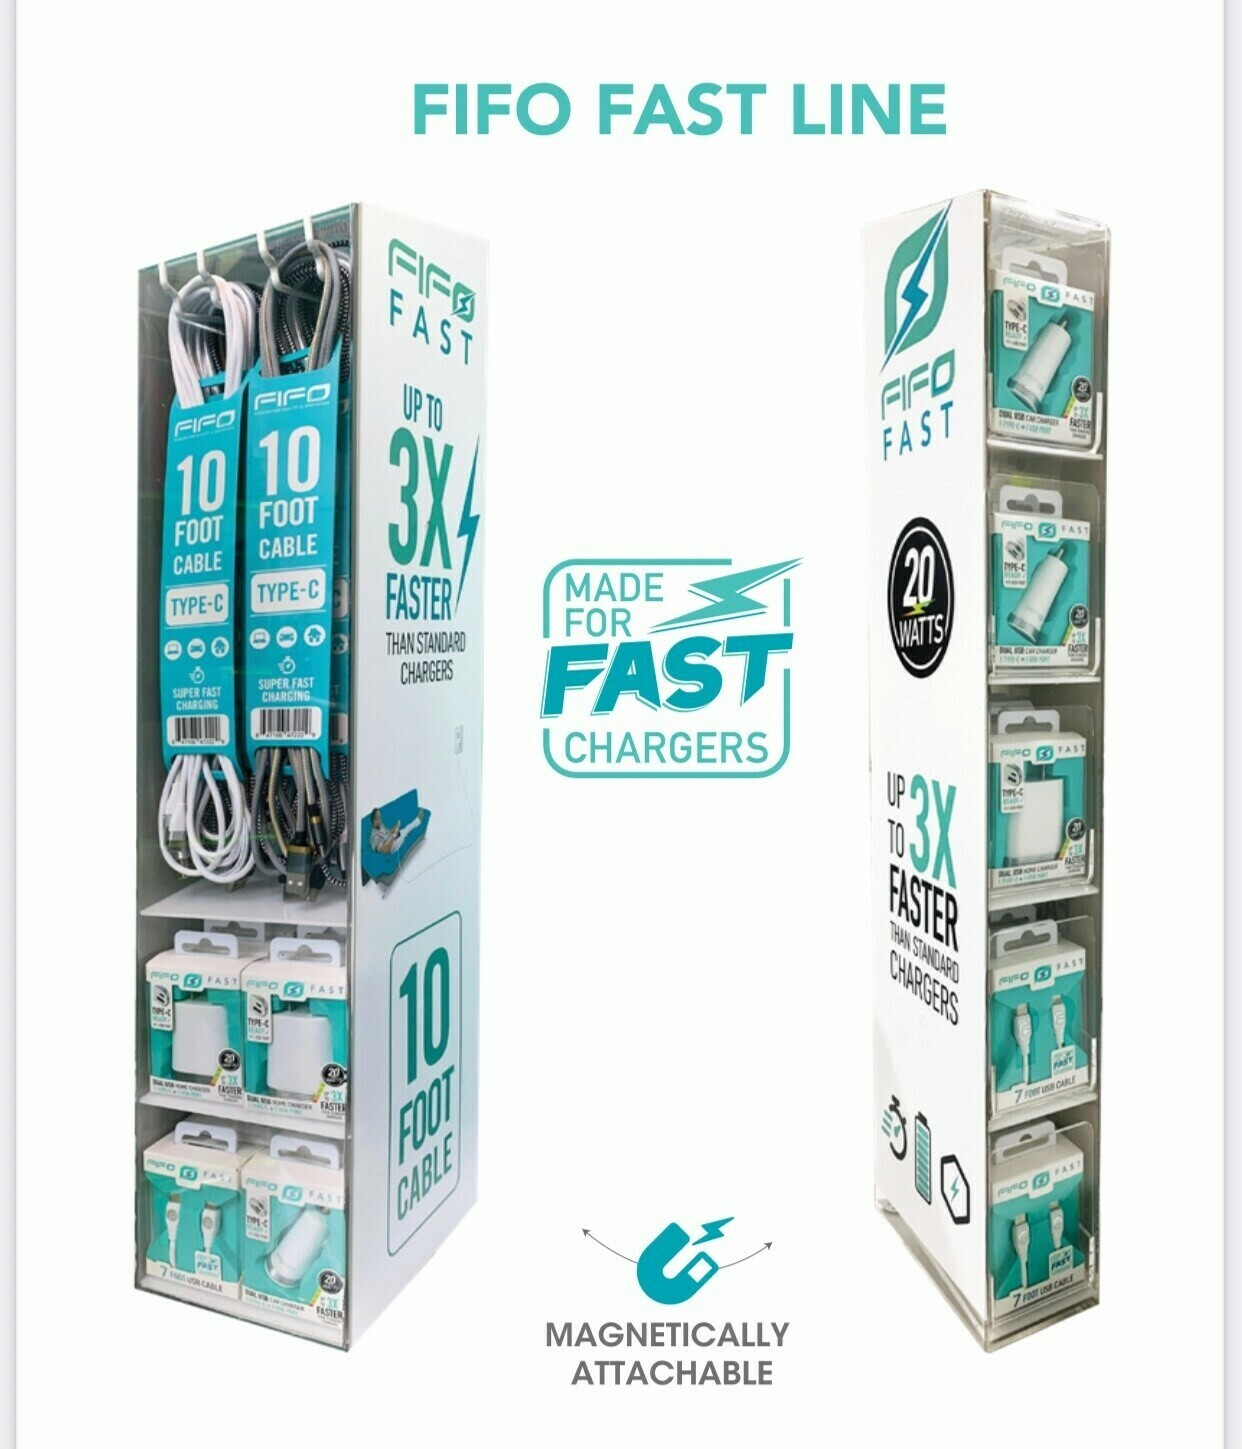 FIFO ULTRA-FAST LINE FAST CLICK COLLECTION DISPLAYS